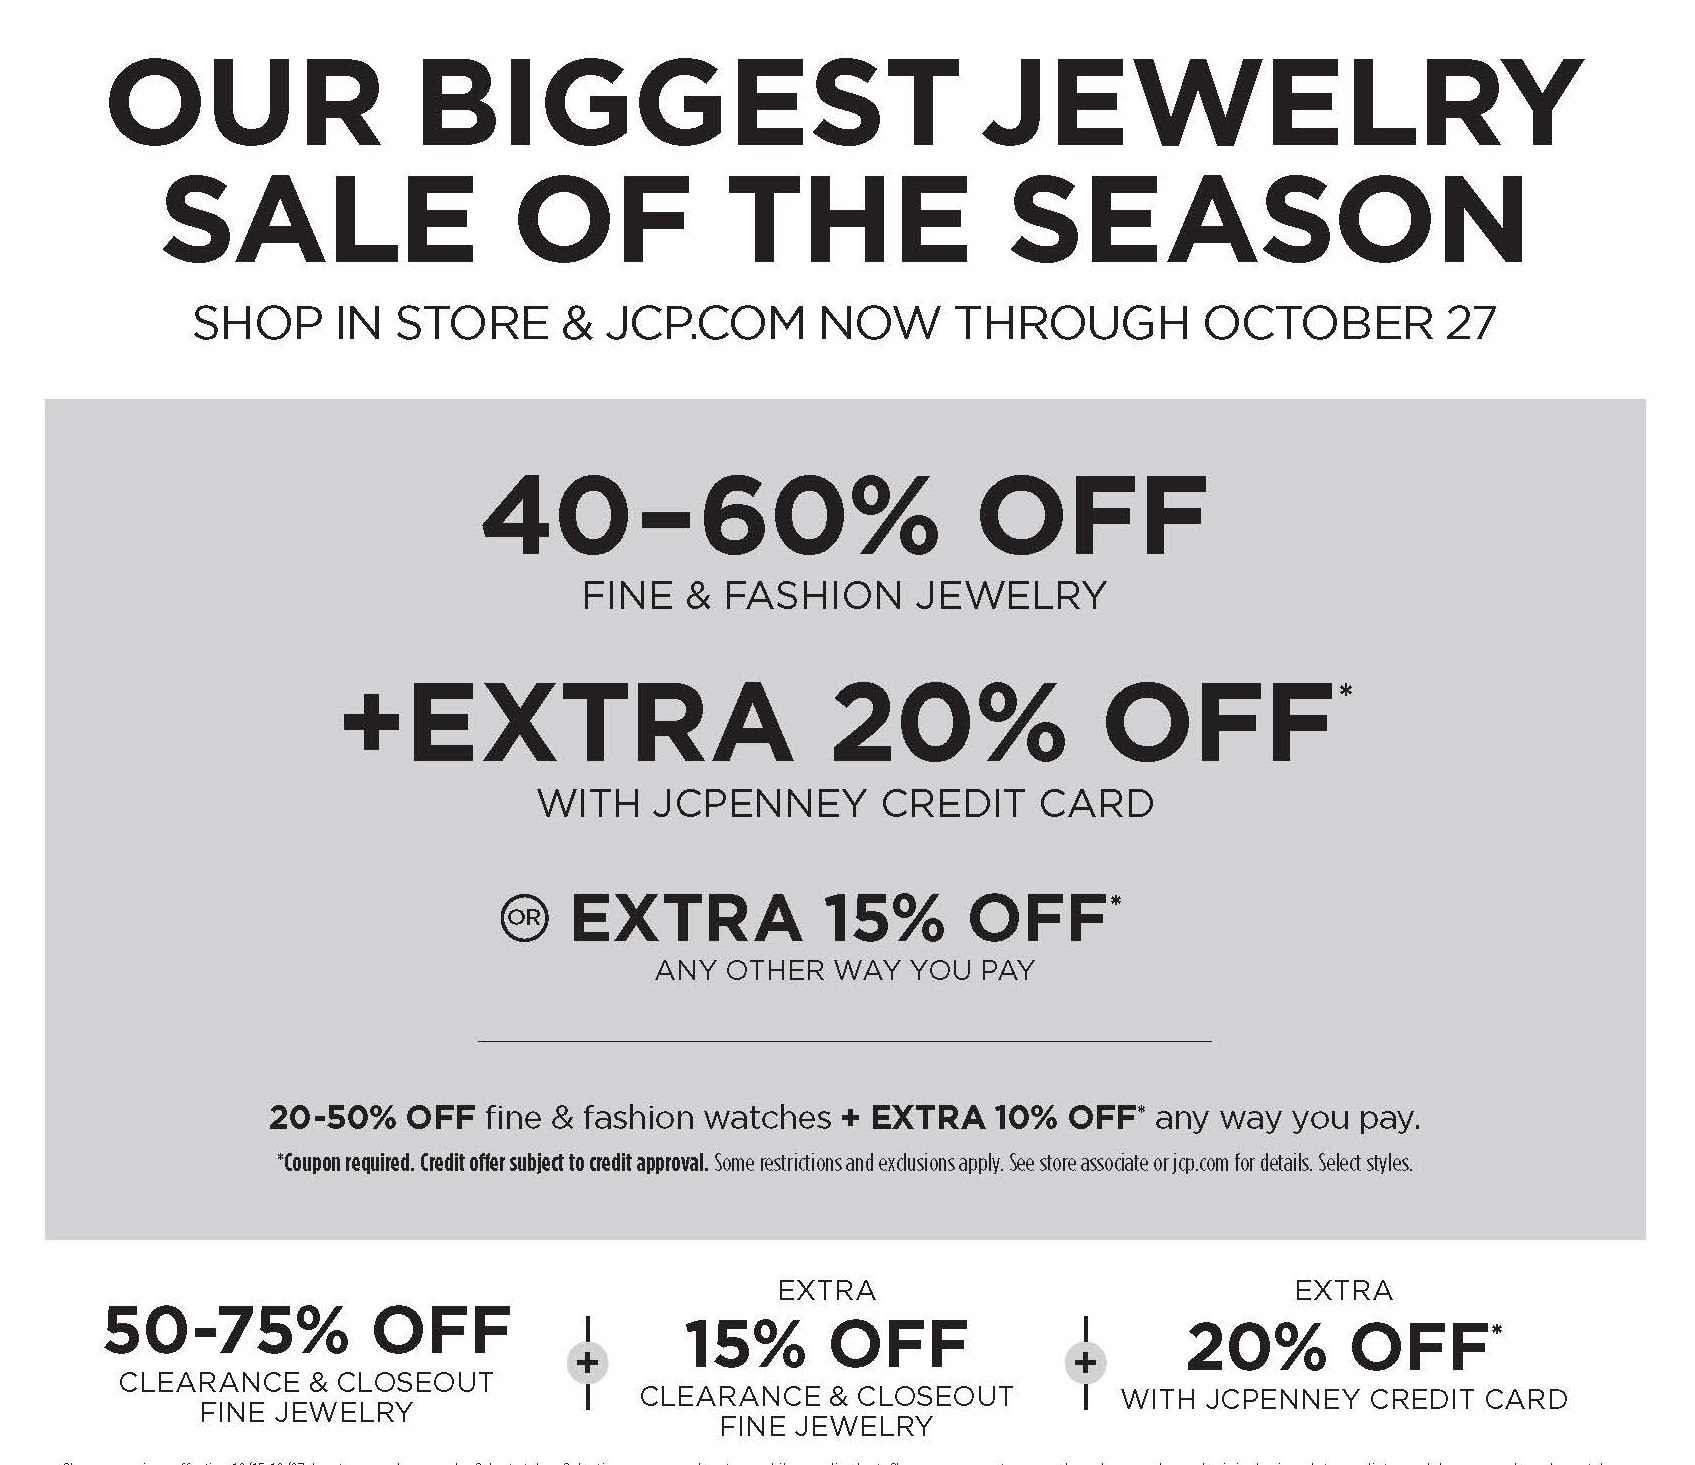 Our Biggest Jewelry Sale of the Season from JCPenney